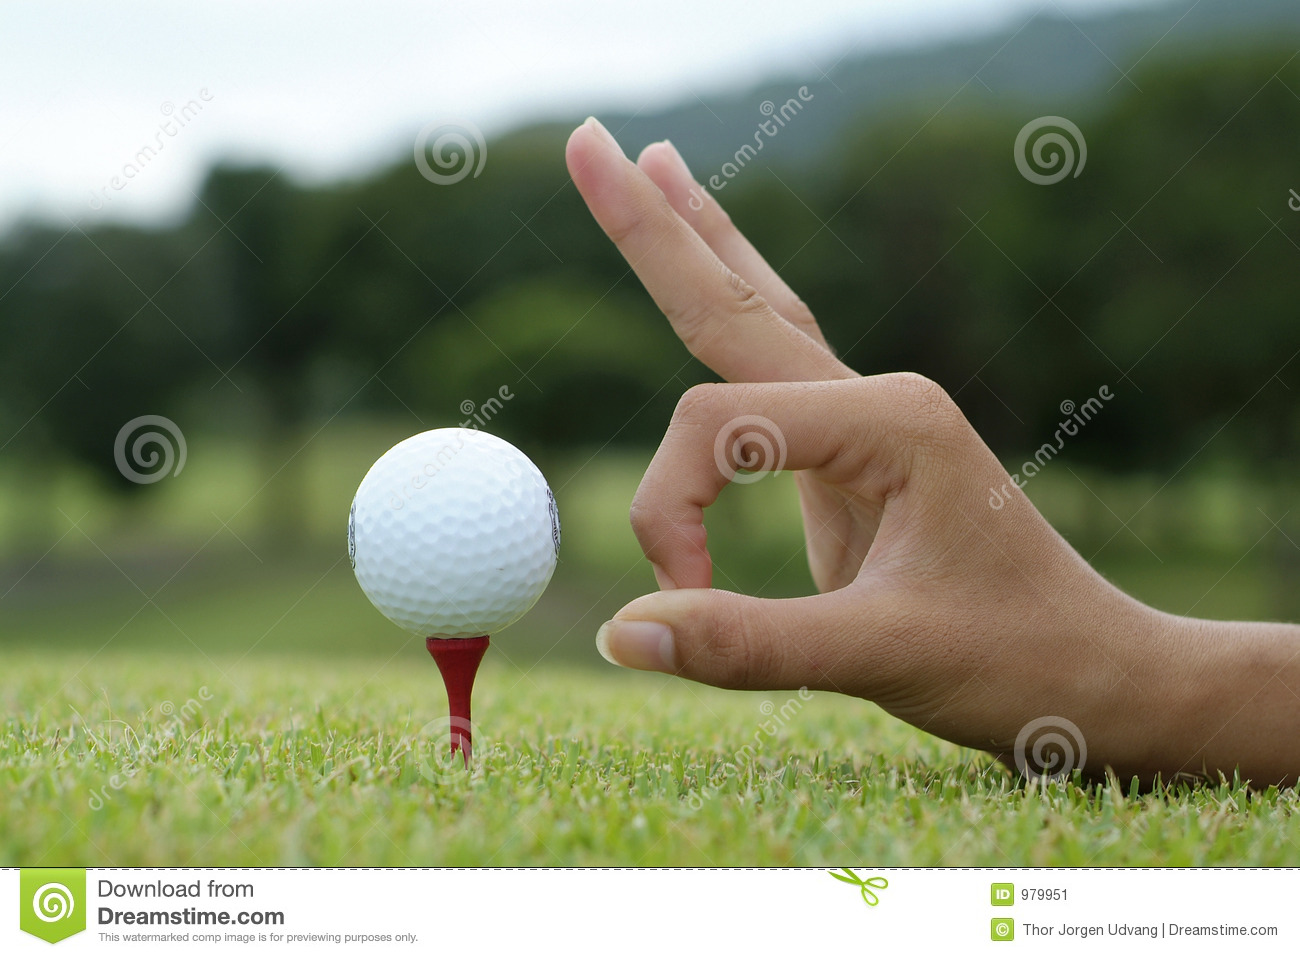 how to draw a golf ball off the tee